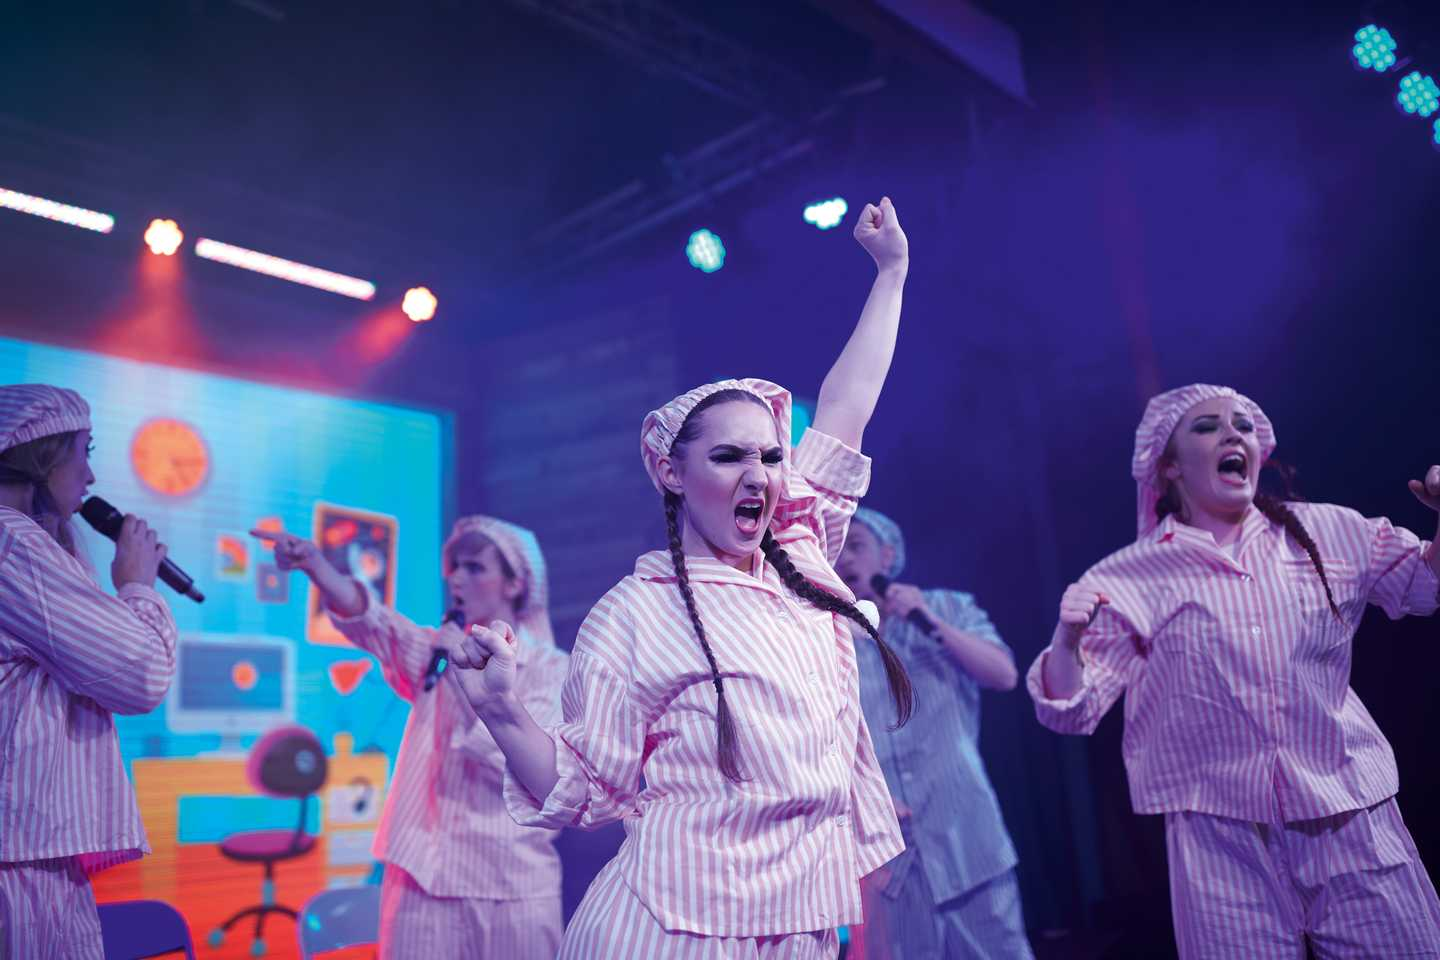 Cast performing live onstage